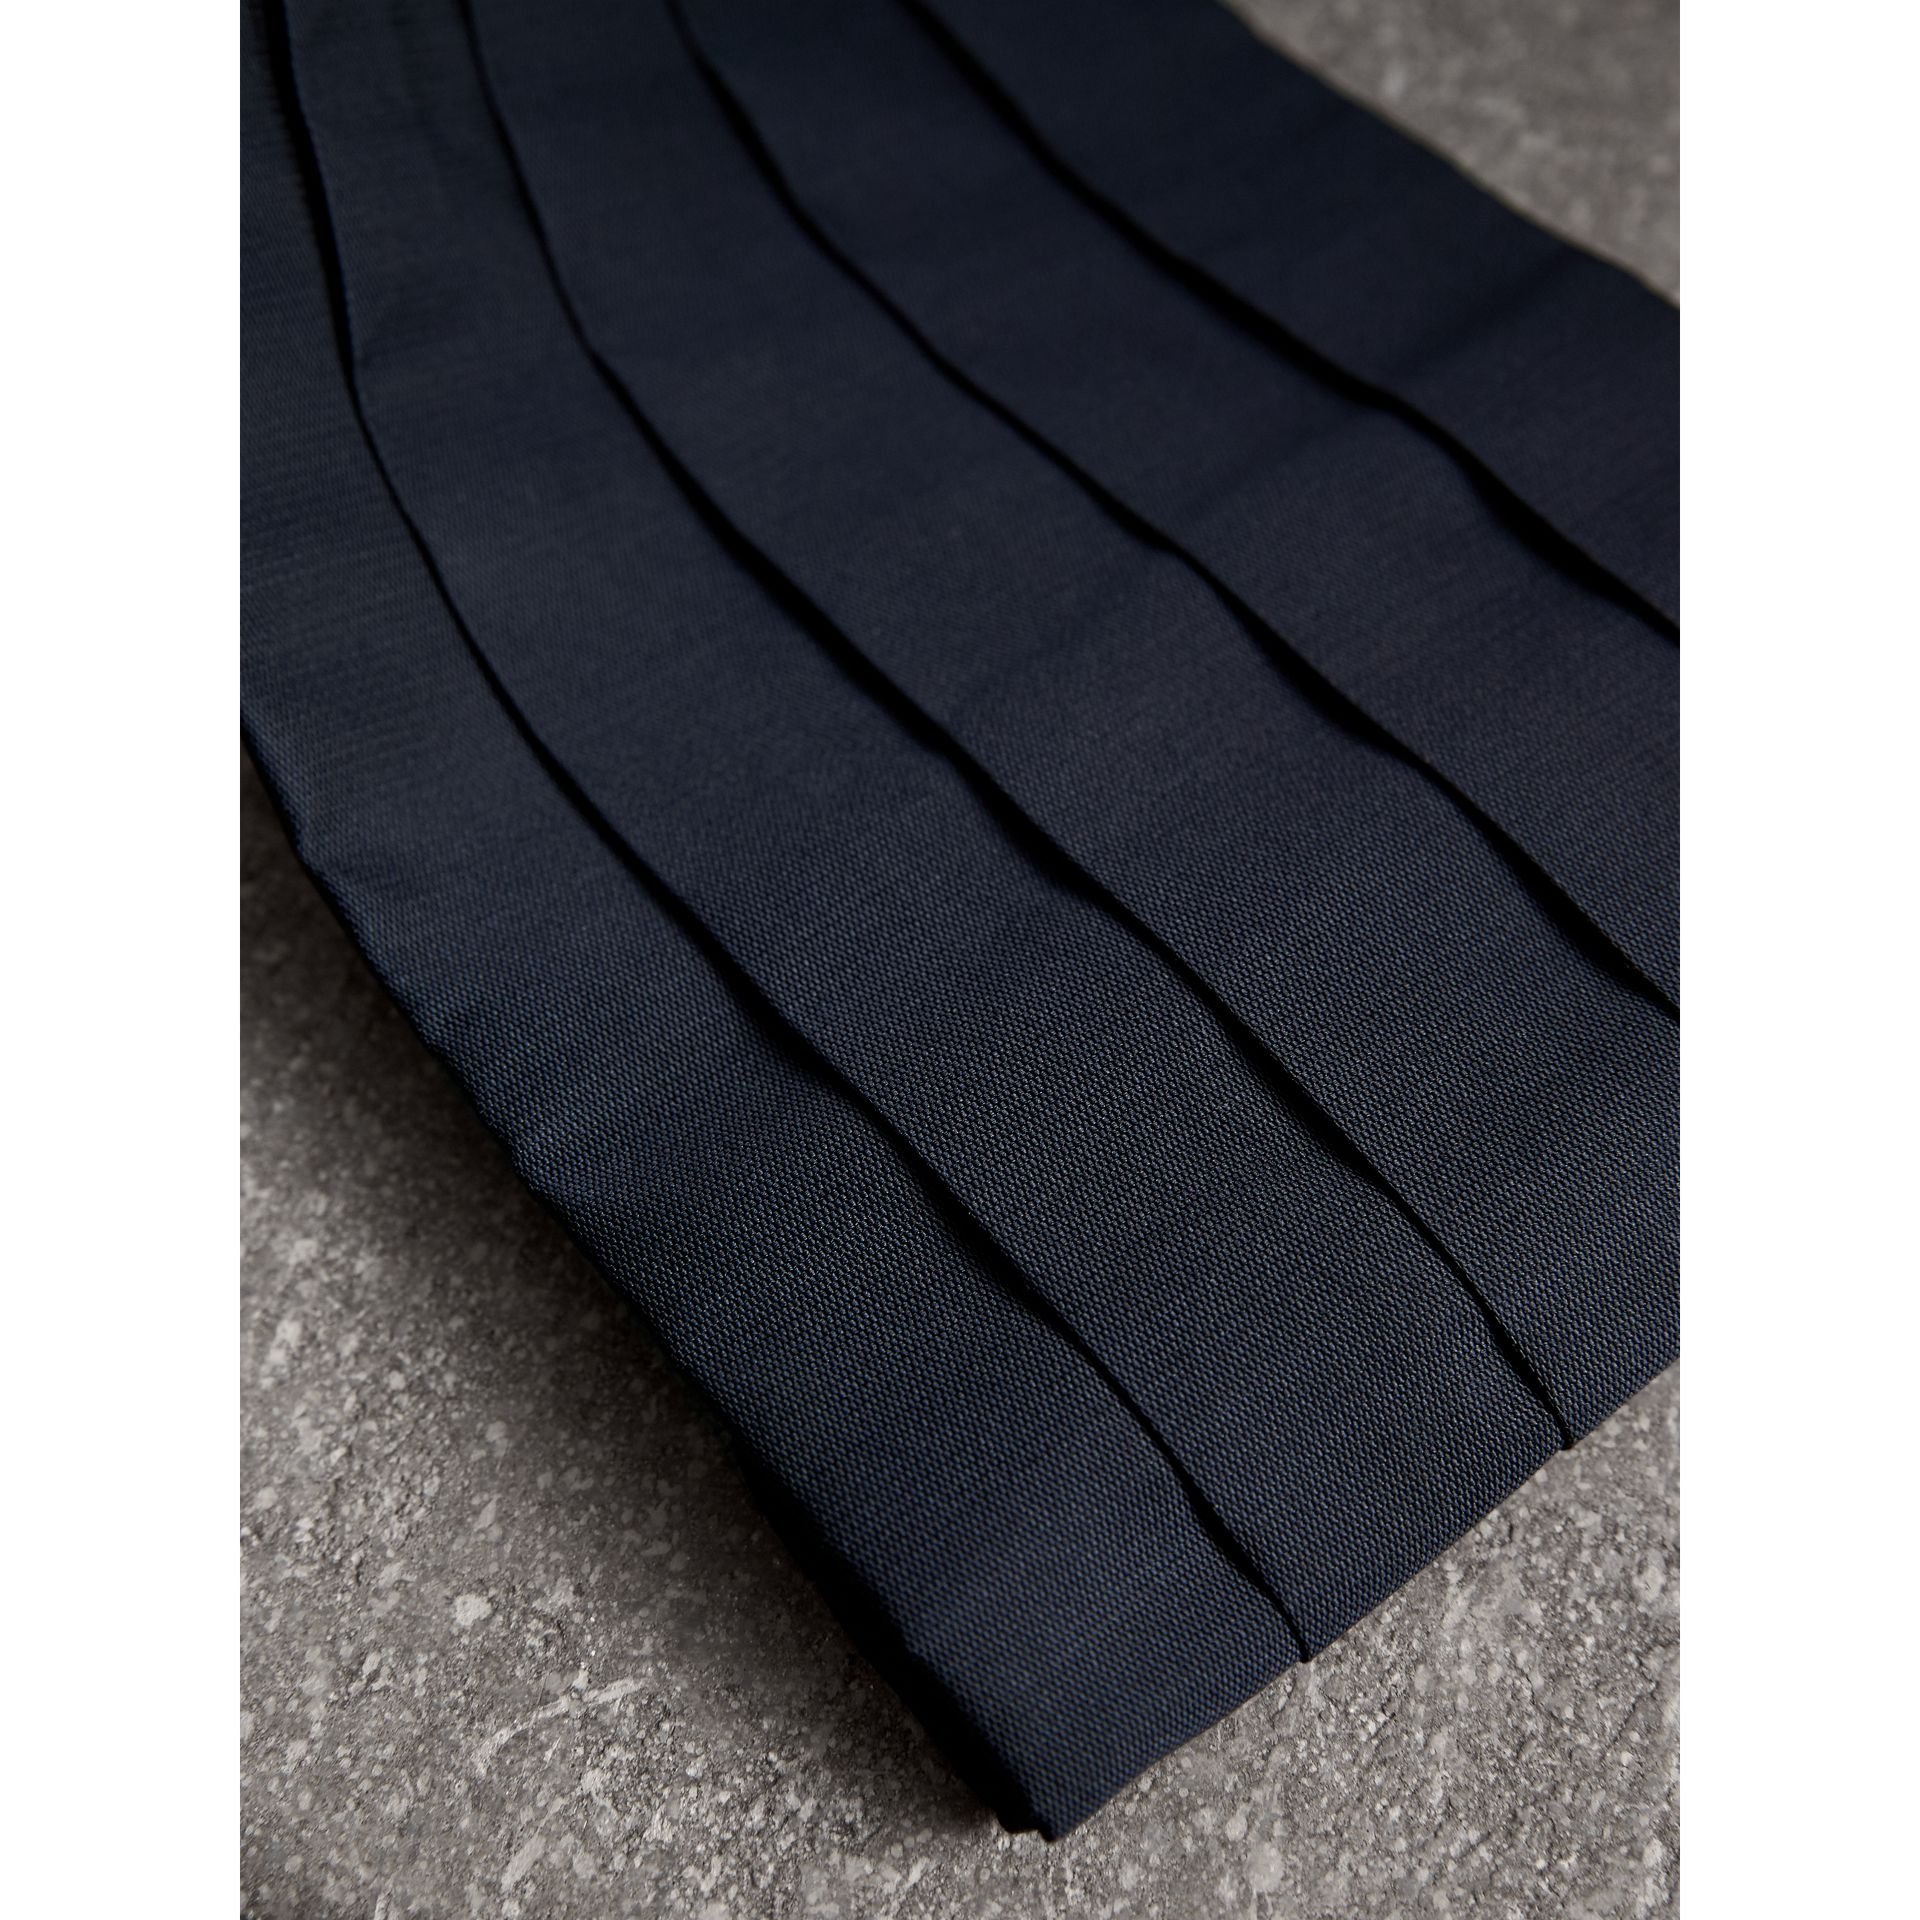 Pleated Silk Cummerbund in Midnight - Men | Burberry - gallery image 1